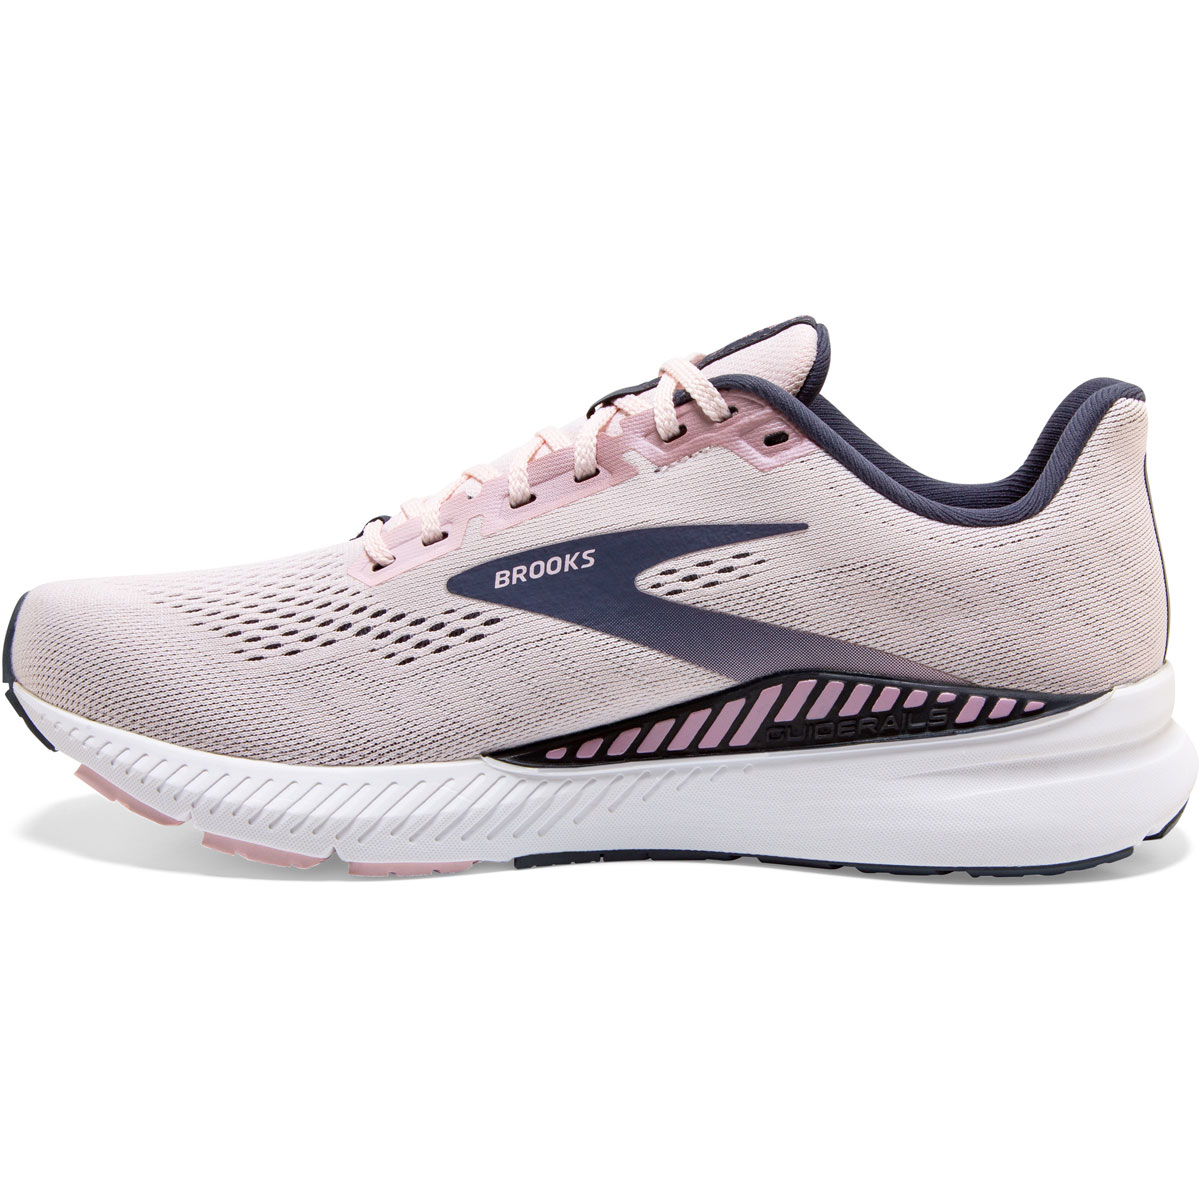 Women's Brooks Launch GTS 8 Running Shoe - Color: Primrose/Ombre - Size: 5 - Width: Regular, Primrose/Ombre, large, image 2